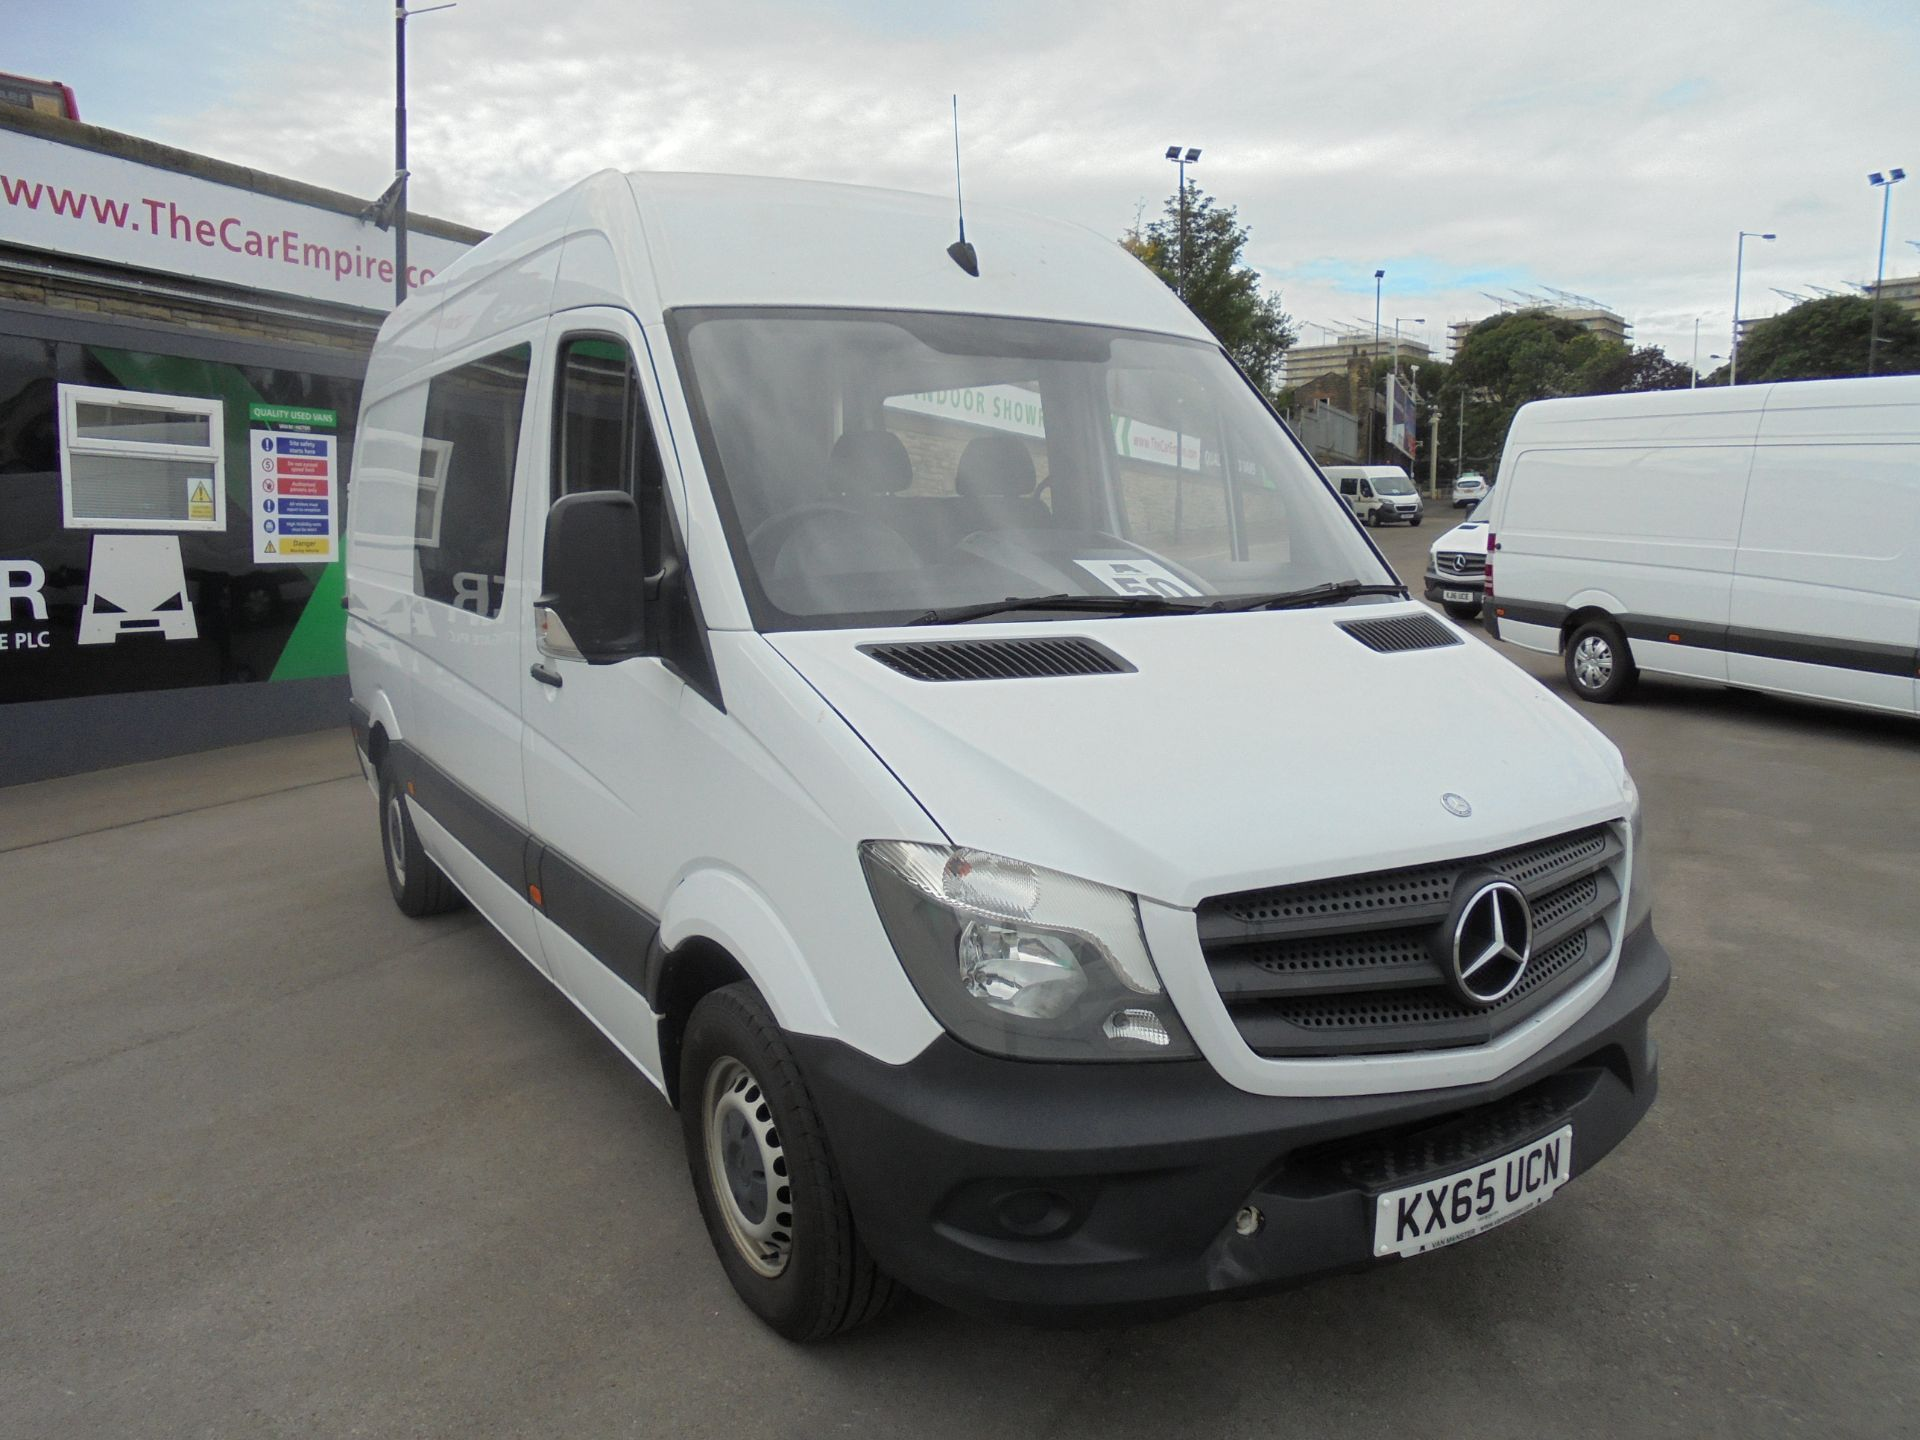 2015 Mercedes-Benz Sprinter 3.5T High Roof Van CREW VAN (KX65UCN)